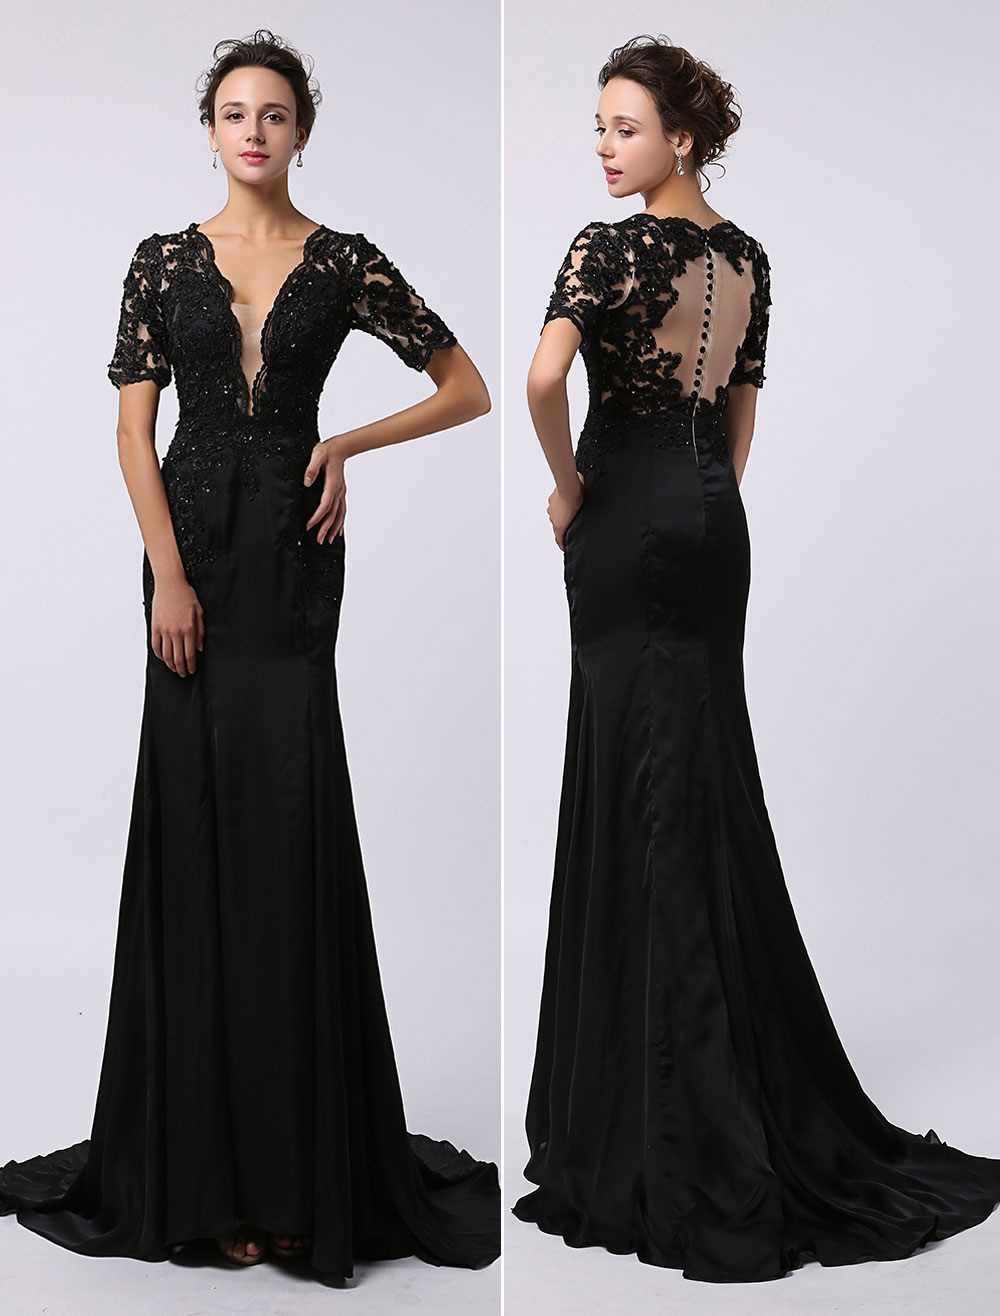 Black Prom Dresses 2018 Long Backless Evening Dress Illusion Lace Applique Deep V Neck Short Sleeves Keyhole Buttons Back Court Train Milanoo